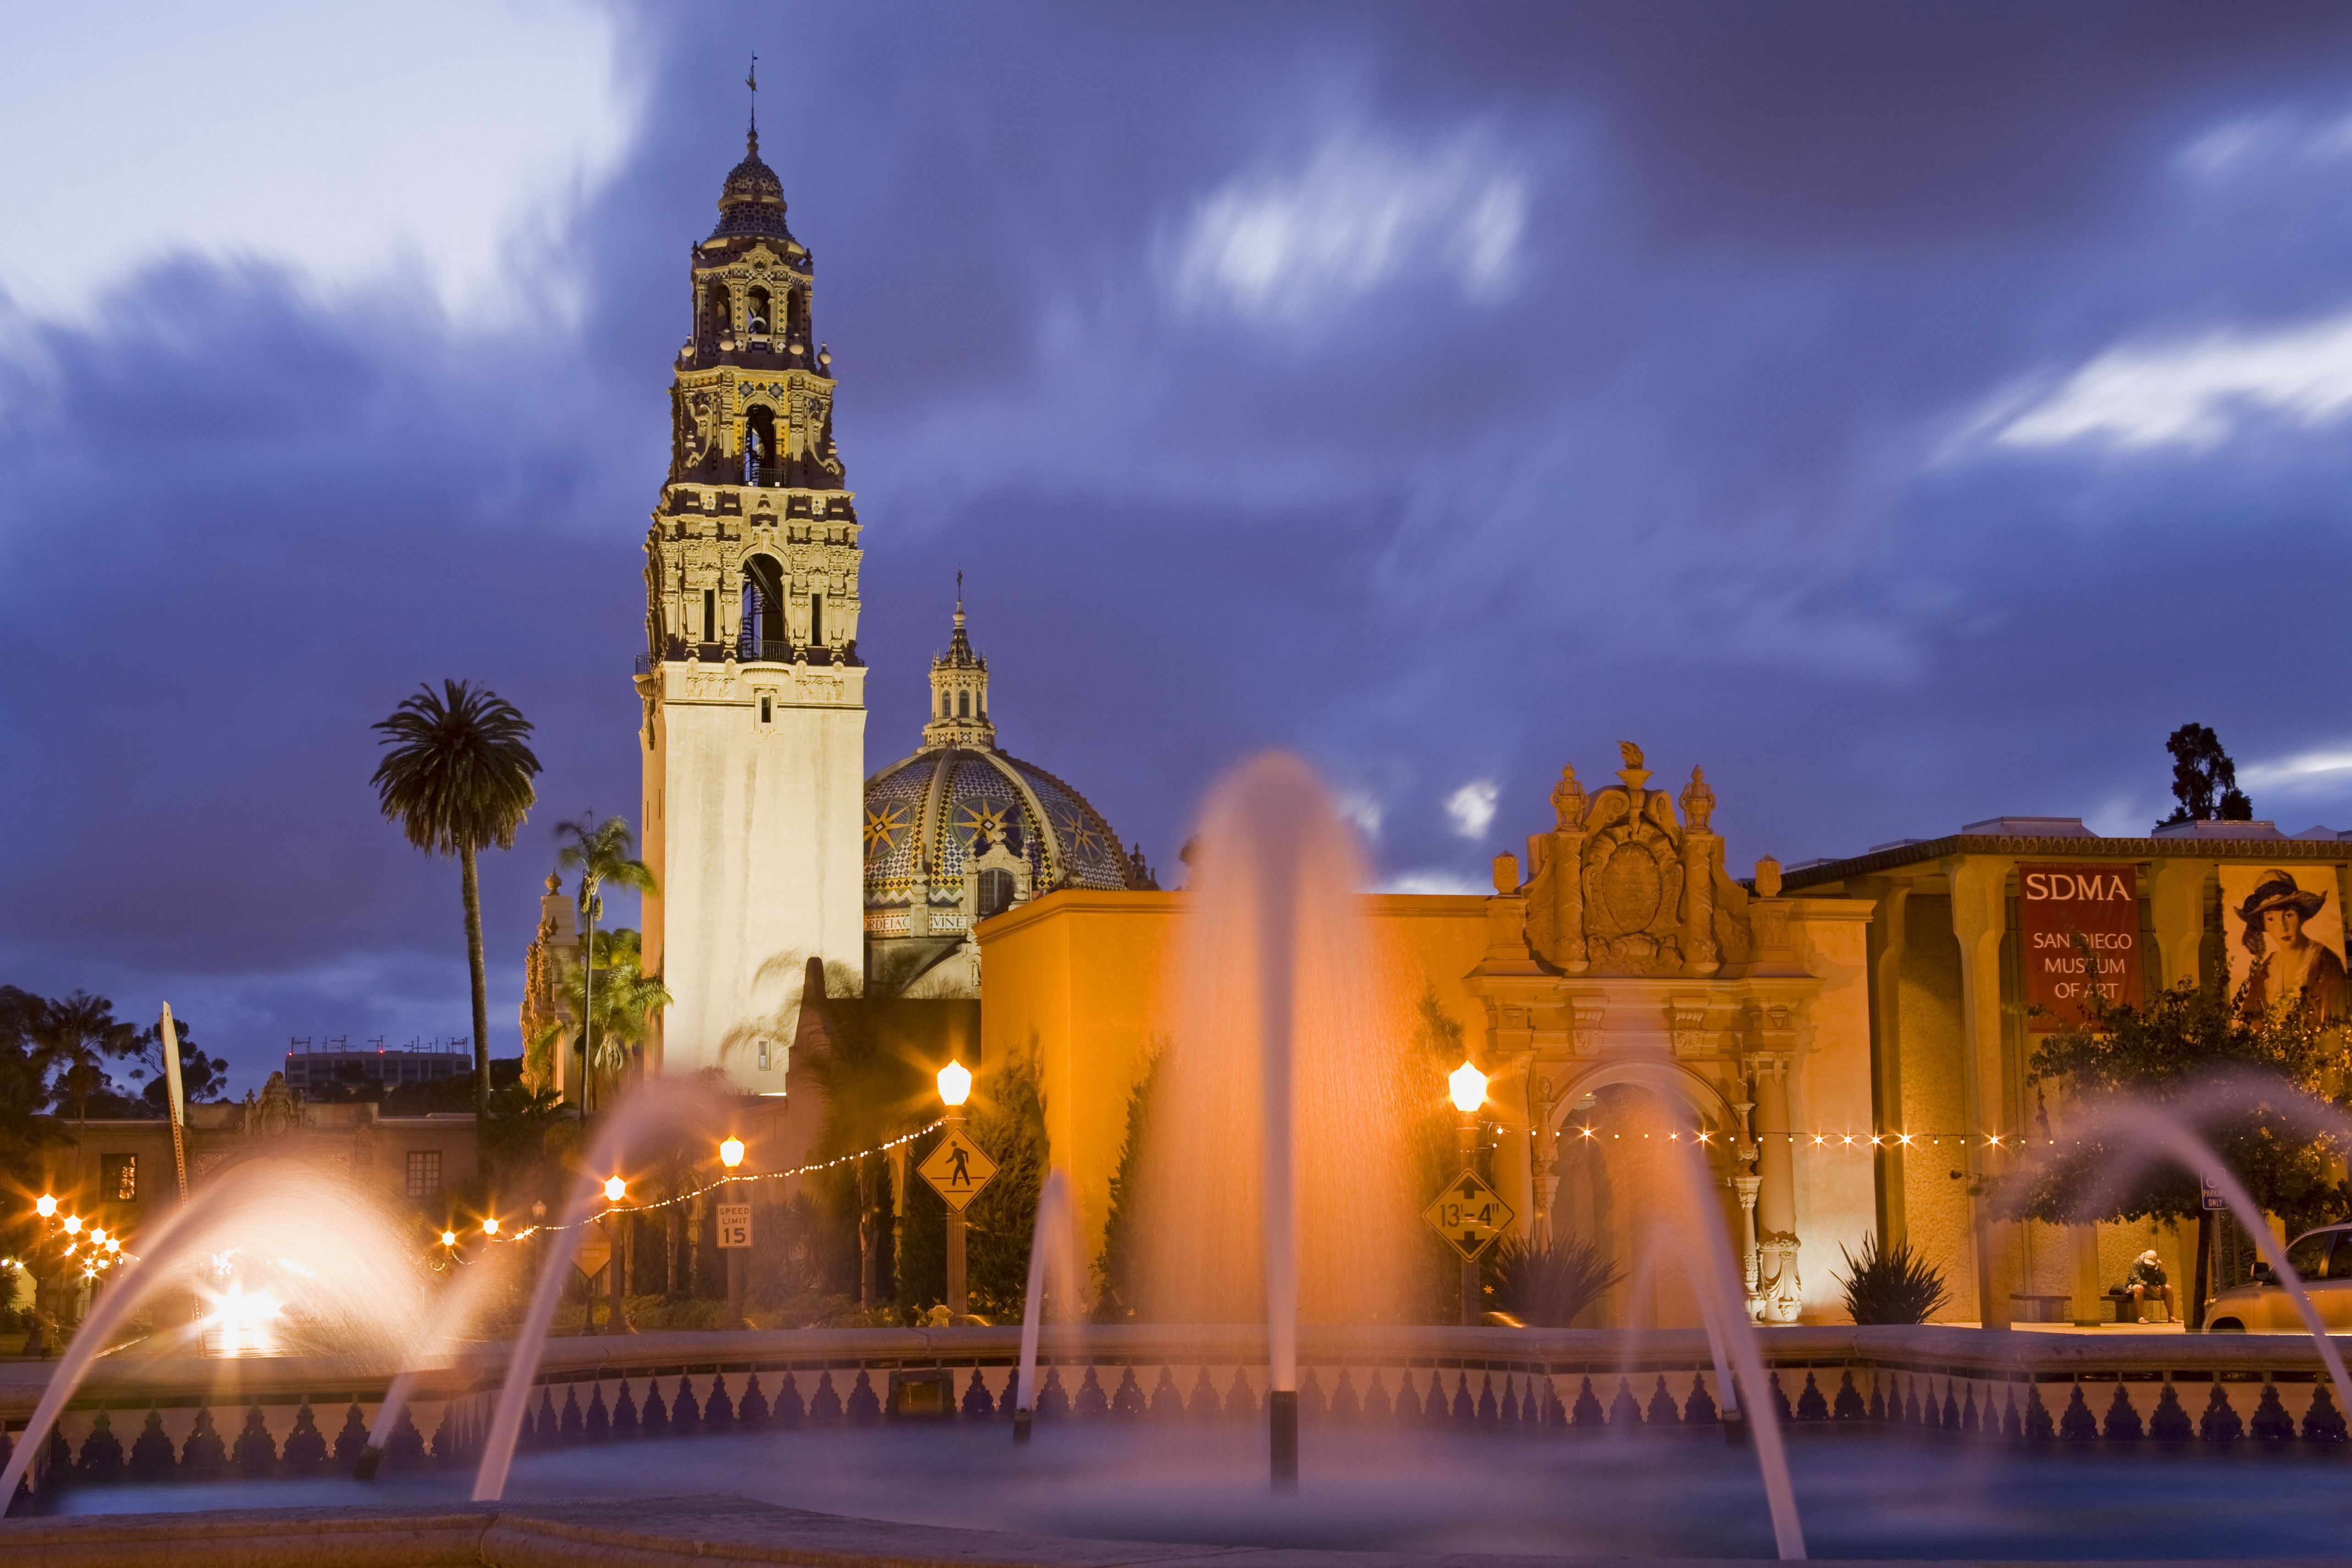 Fountain and Museum of Man in Balboa Park, San Diego, California, United States of America, North America